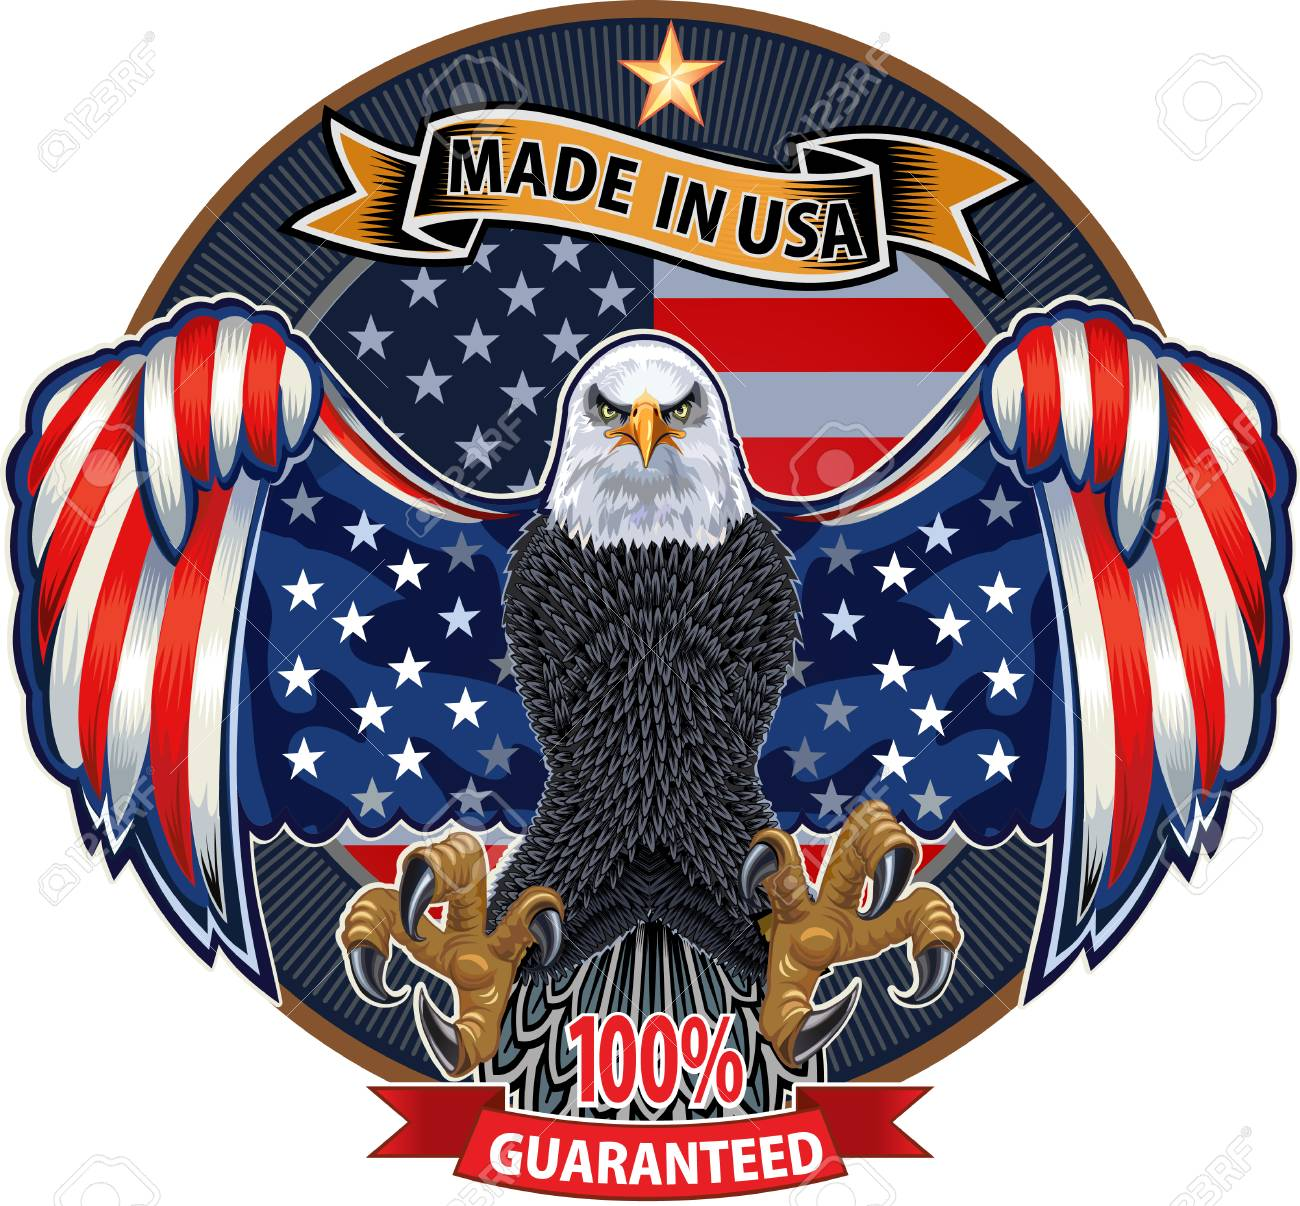 American eagle with USA flags - 126400076